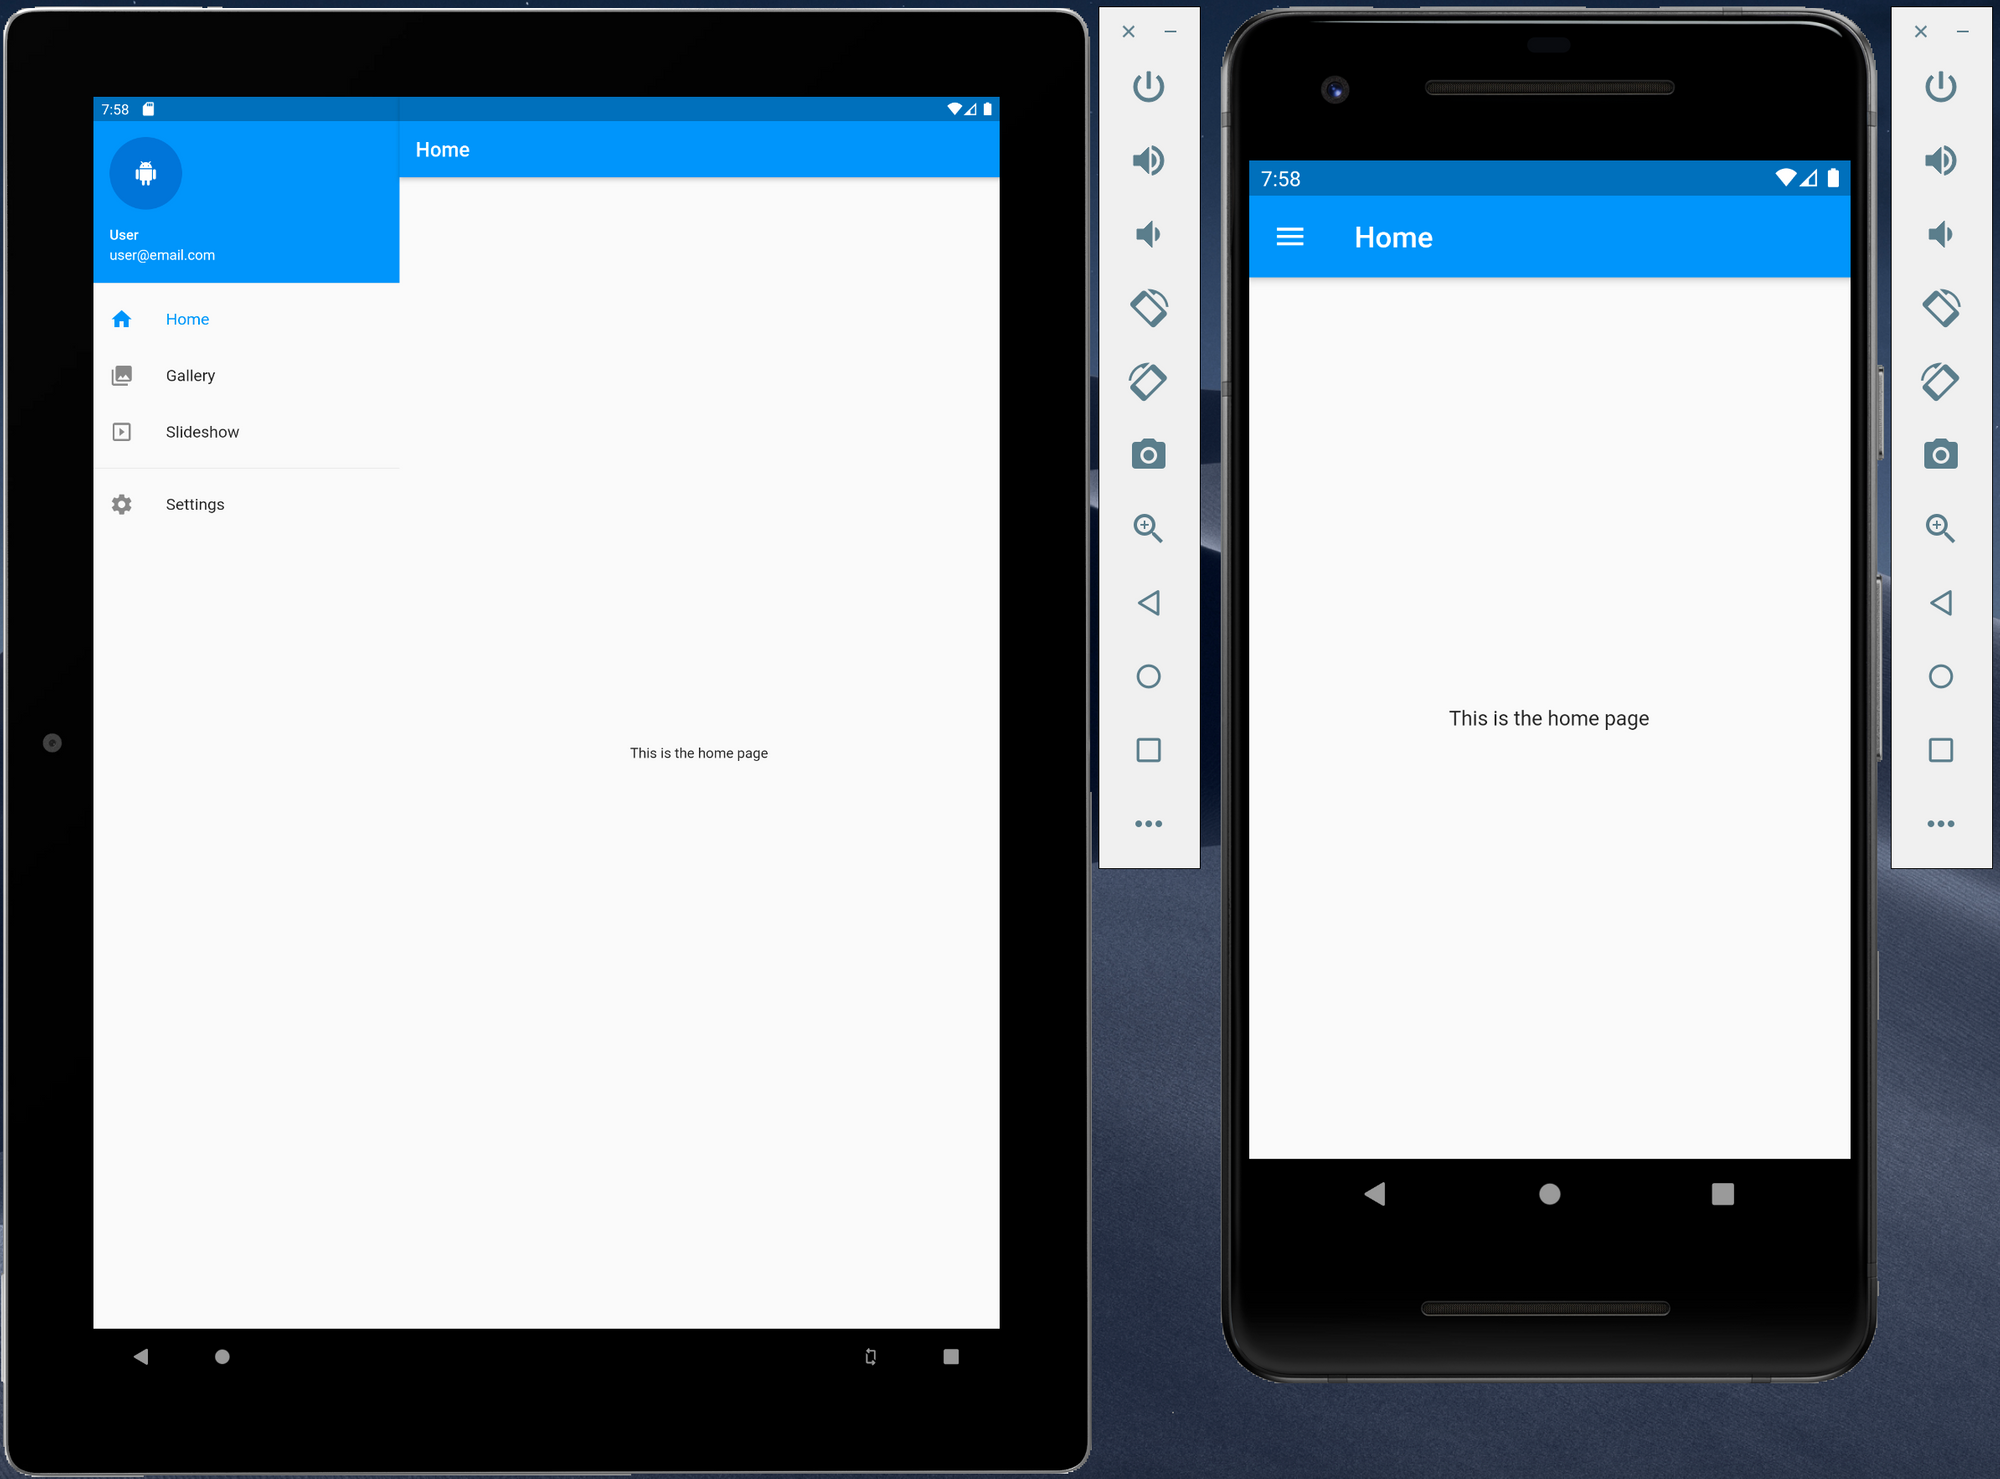 Creating a responsive Flutter application using Material Design using a navigation drawer